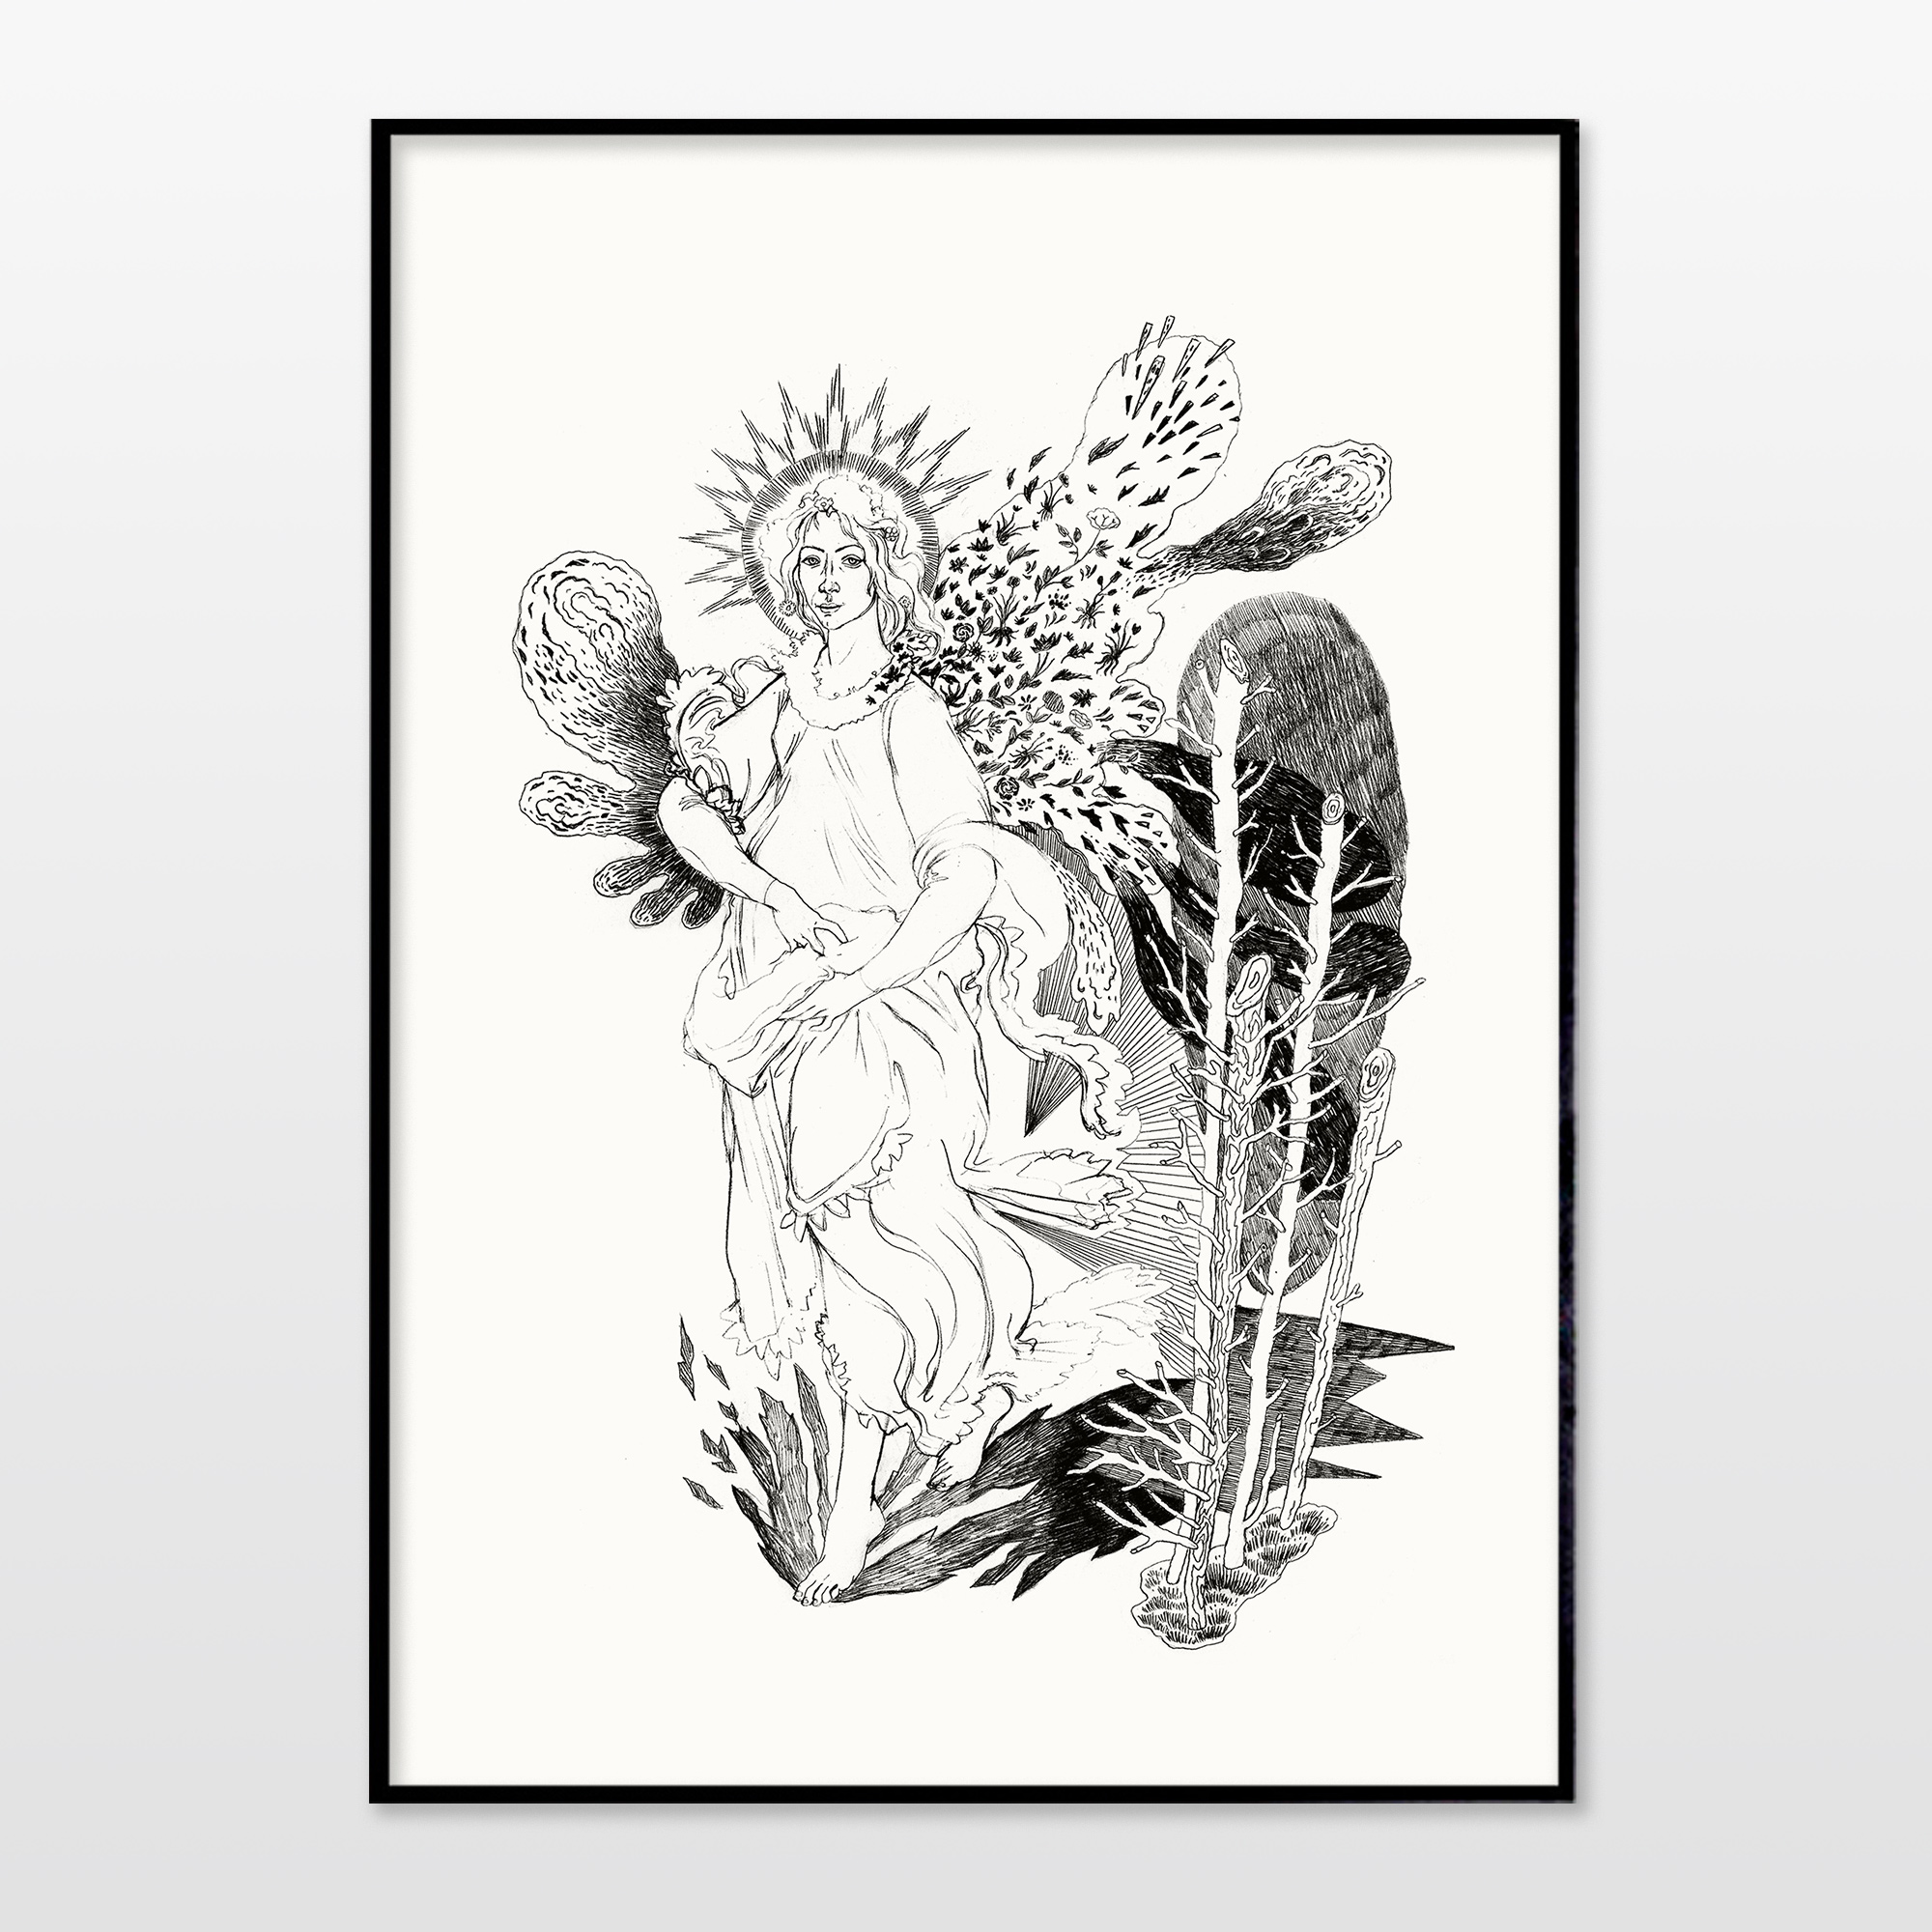 posters-prints, giclee-print, aesthetic, figurative, monochrome, bodies, botany, sexuality, black, white, ink, paper, beautiful, black-and-white, contemporary-art, danish, decorative, female, flowers, interior, interior-design, modern, modern-art, nordic, nude, plants, pretty, scandinavien, Buy original high quality art. Paintings, drawings, limited edition prints & posters by talented artists.